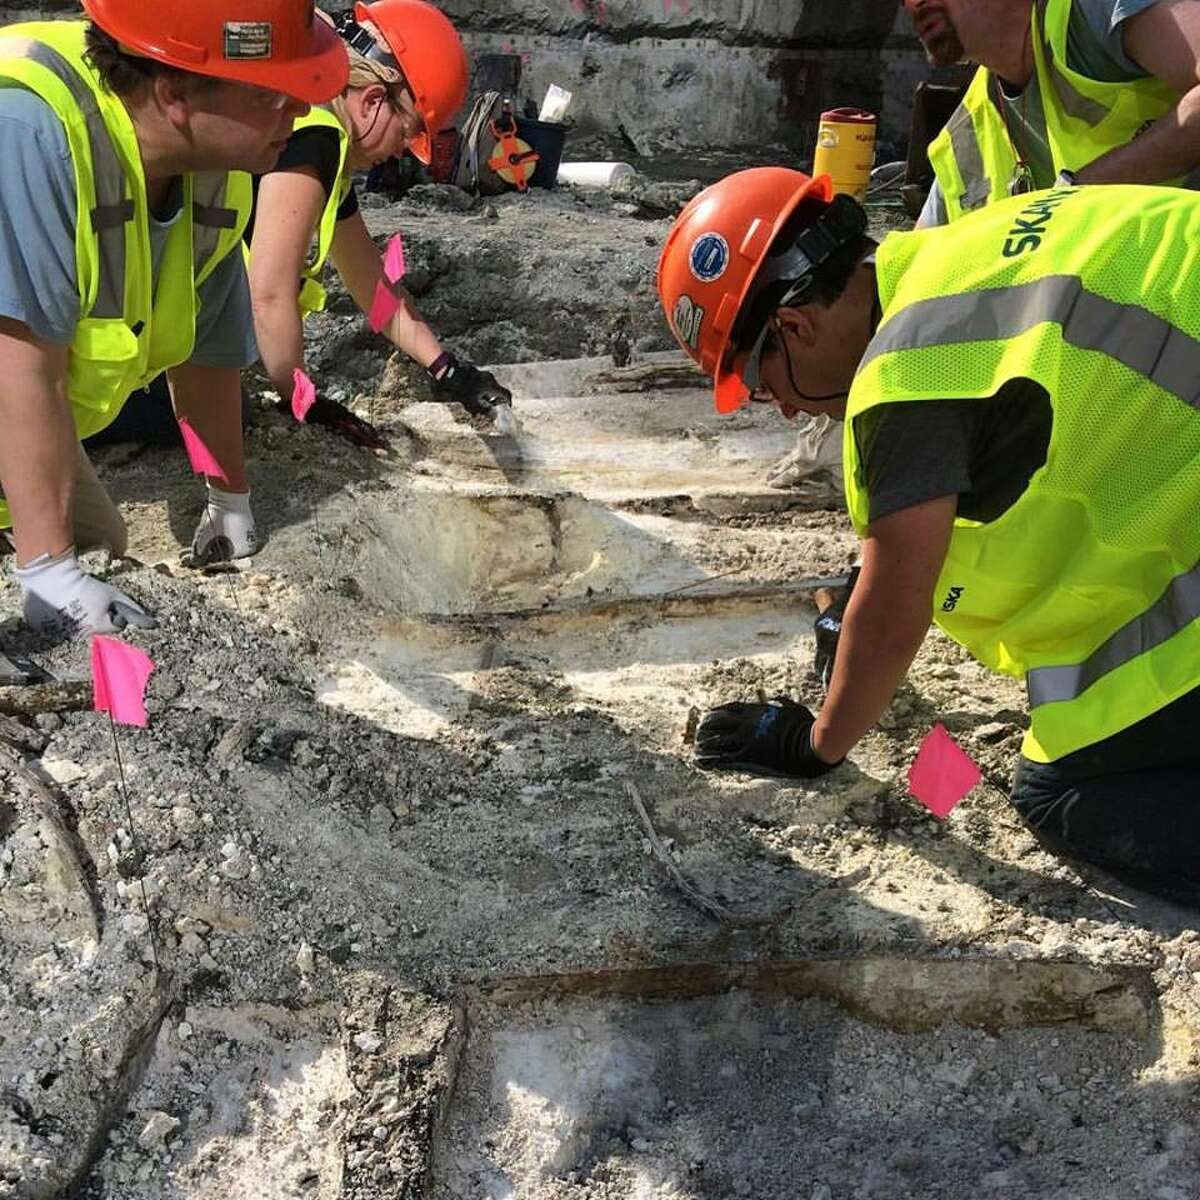 Archaeologists work at the site of a recently unearthed shipwreck in the Dorchester section of Boston in May 2016. (City of Boston Archaeology Program)